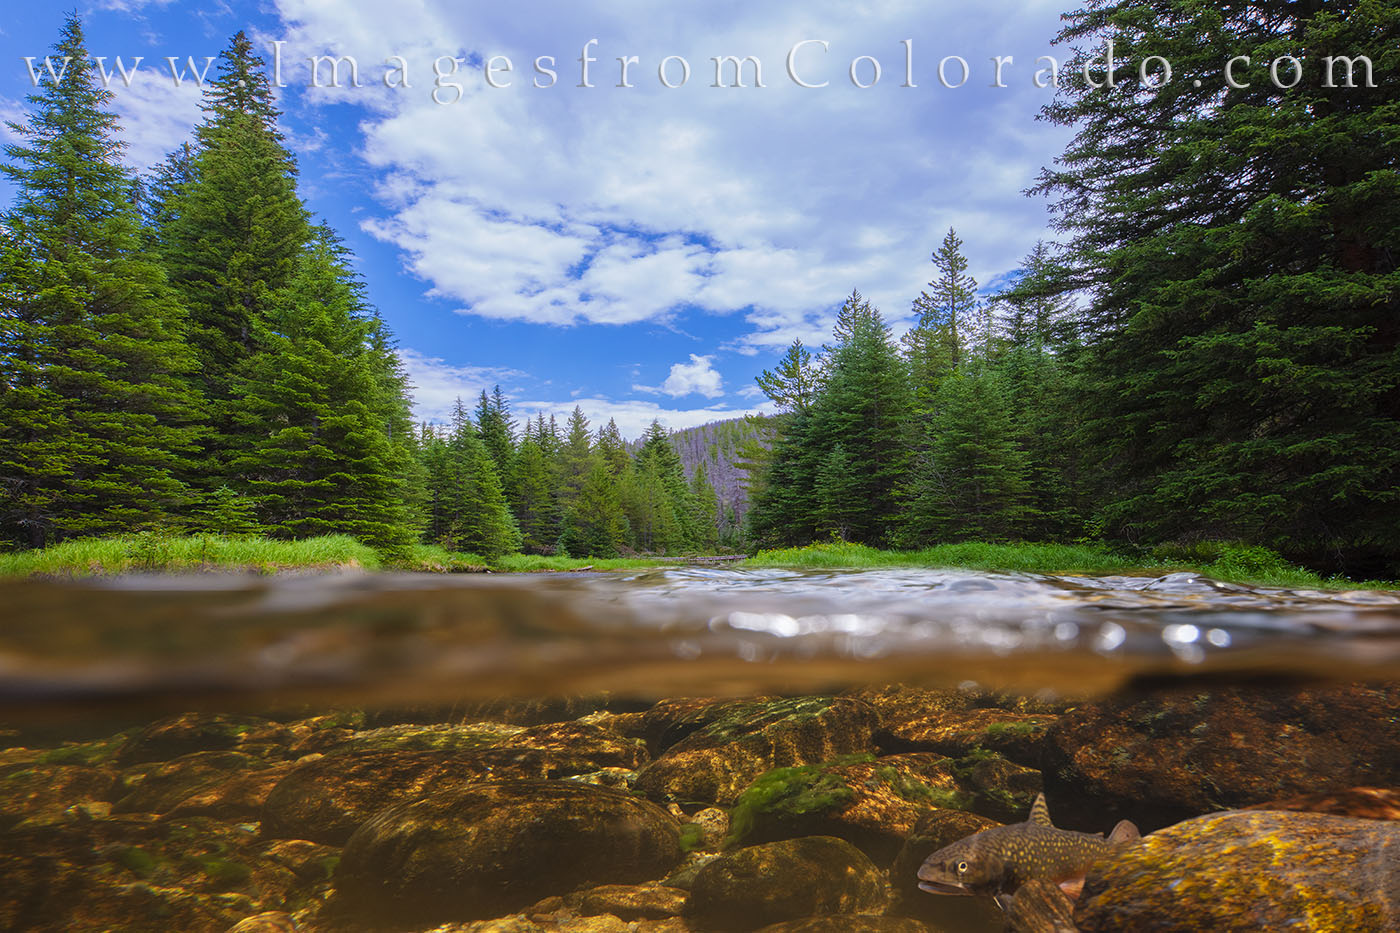 brook trout, north inlets, rocky mountain national park, underwater, stream, creek, mountains, trout, grand lake, north inlets trail, photo